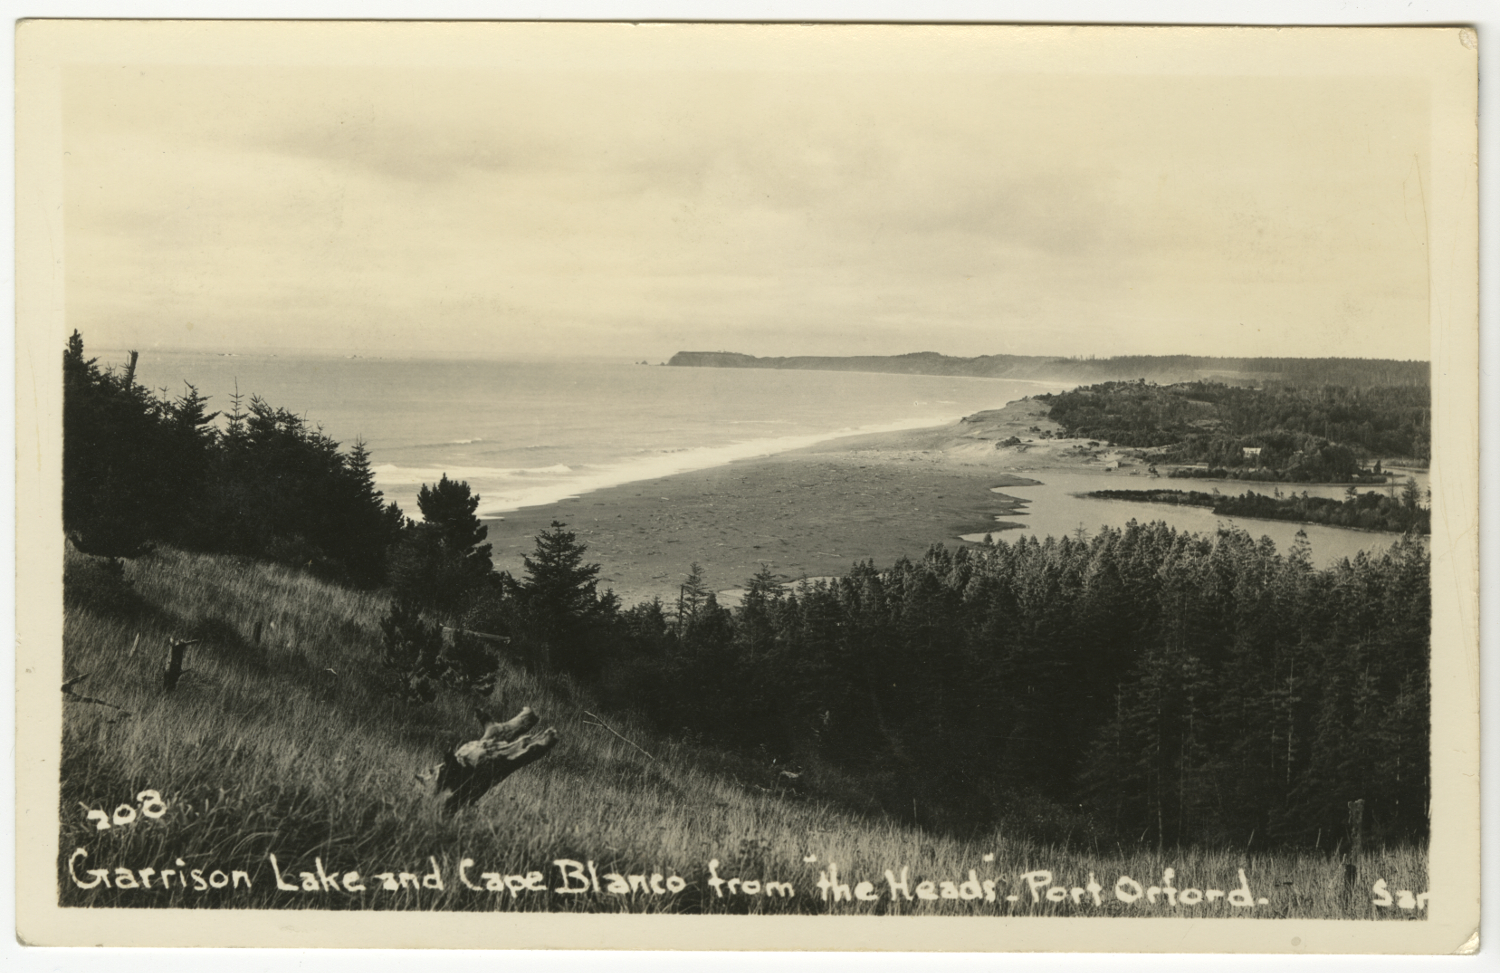 Garrison Lake and Cape Blanco from the Heads - Port Orford - Sands